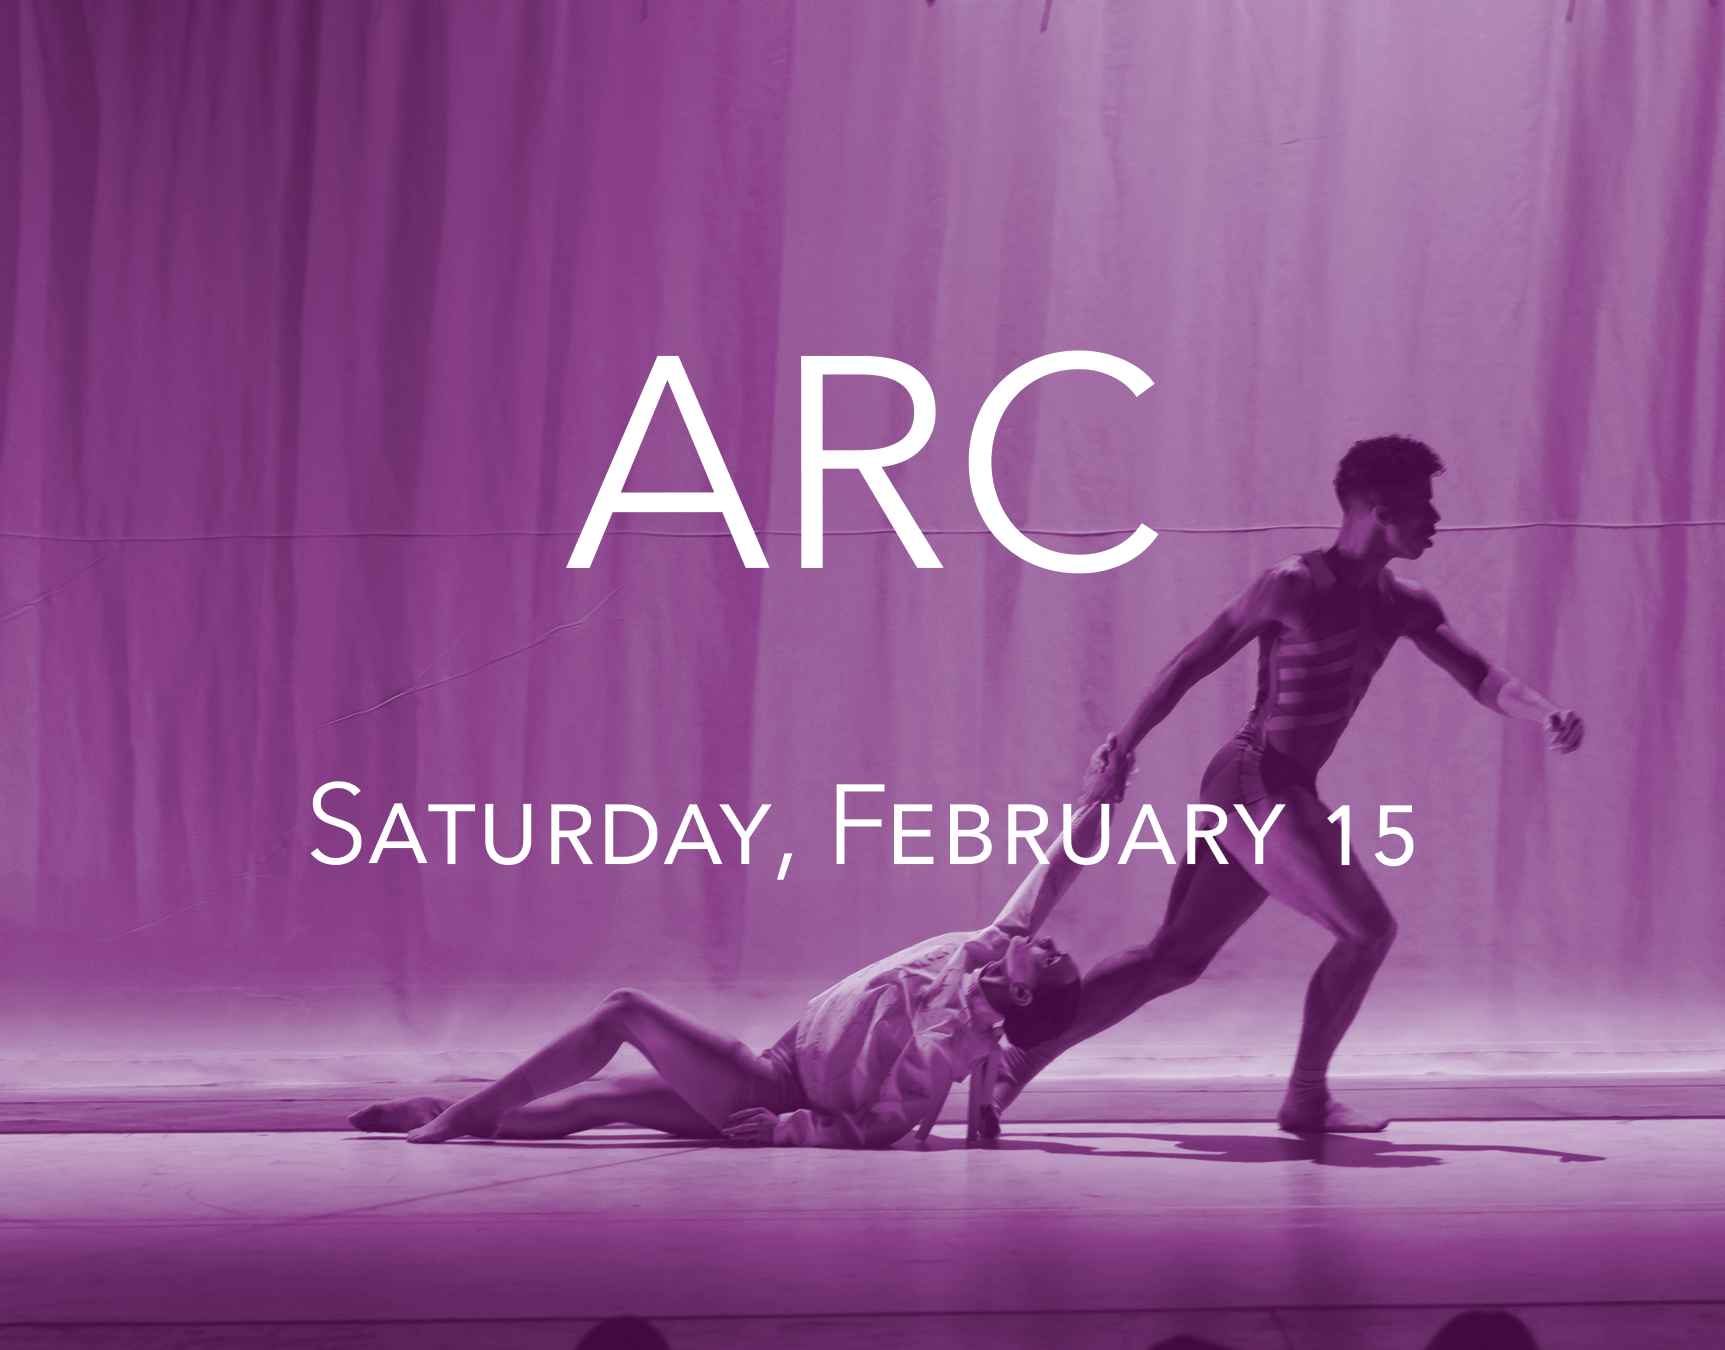 ARC - Saturday, February 15 | 8:00pmExplore power, beauty, and raw emotion with Eisenhower Dance Detroit in this triple bill program. Artistic Director, Stephanie Pizzo's, thought-provoking ARC created in collaboration with Detroit-based projection artist Adam Ludwig and lighting designer David Goodman-Edberg, returns by popular demand along with the premiere of a new work by internationally renowned choreographer, Nicolo Fonte. Pizzo's Surge, recently performed at Jacob's Pillow and set to an original composition by well-known techno artist, Aaron Siegel, rounds out this dynamic program.$32 General Admission$27 Senior (Ages 62+)$27 StudentBerman Center for the Performing Arts6600 W Maple Rd, West Bloomfield Township, MI 48322